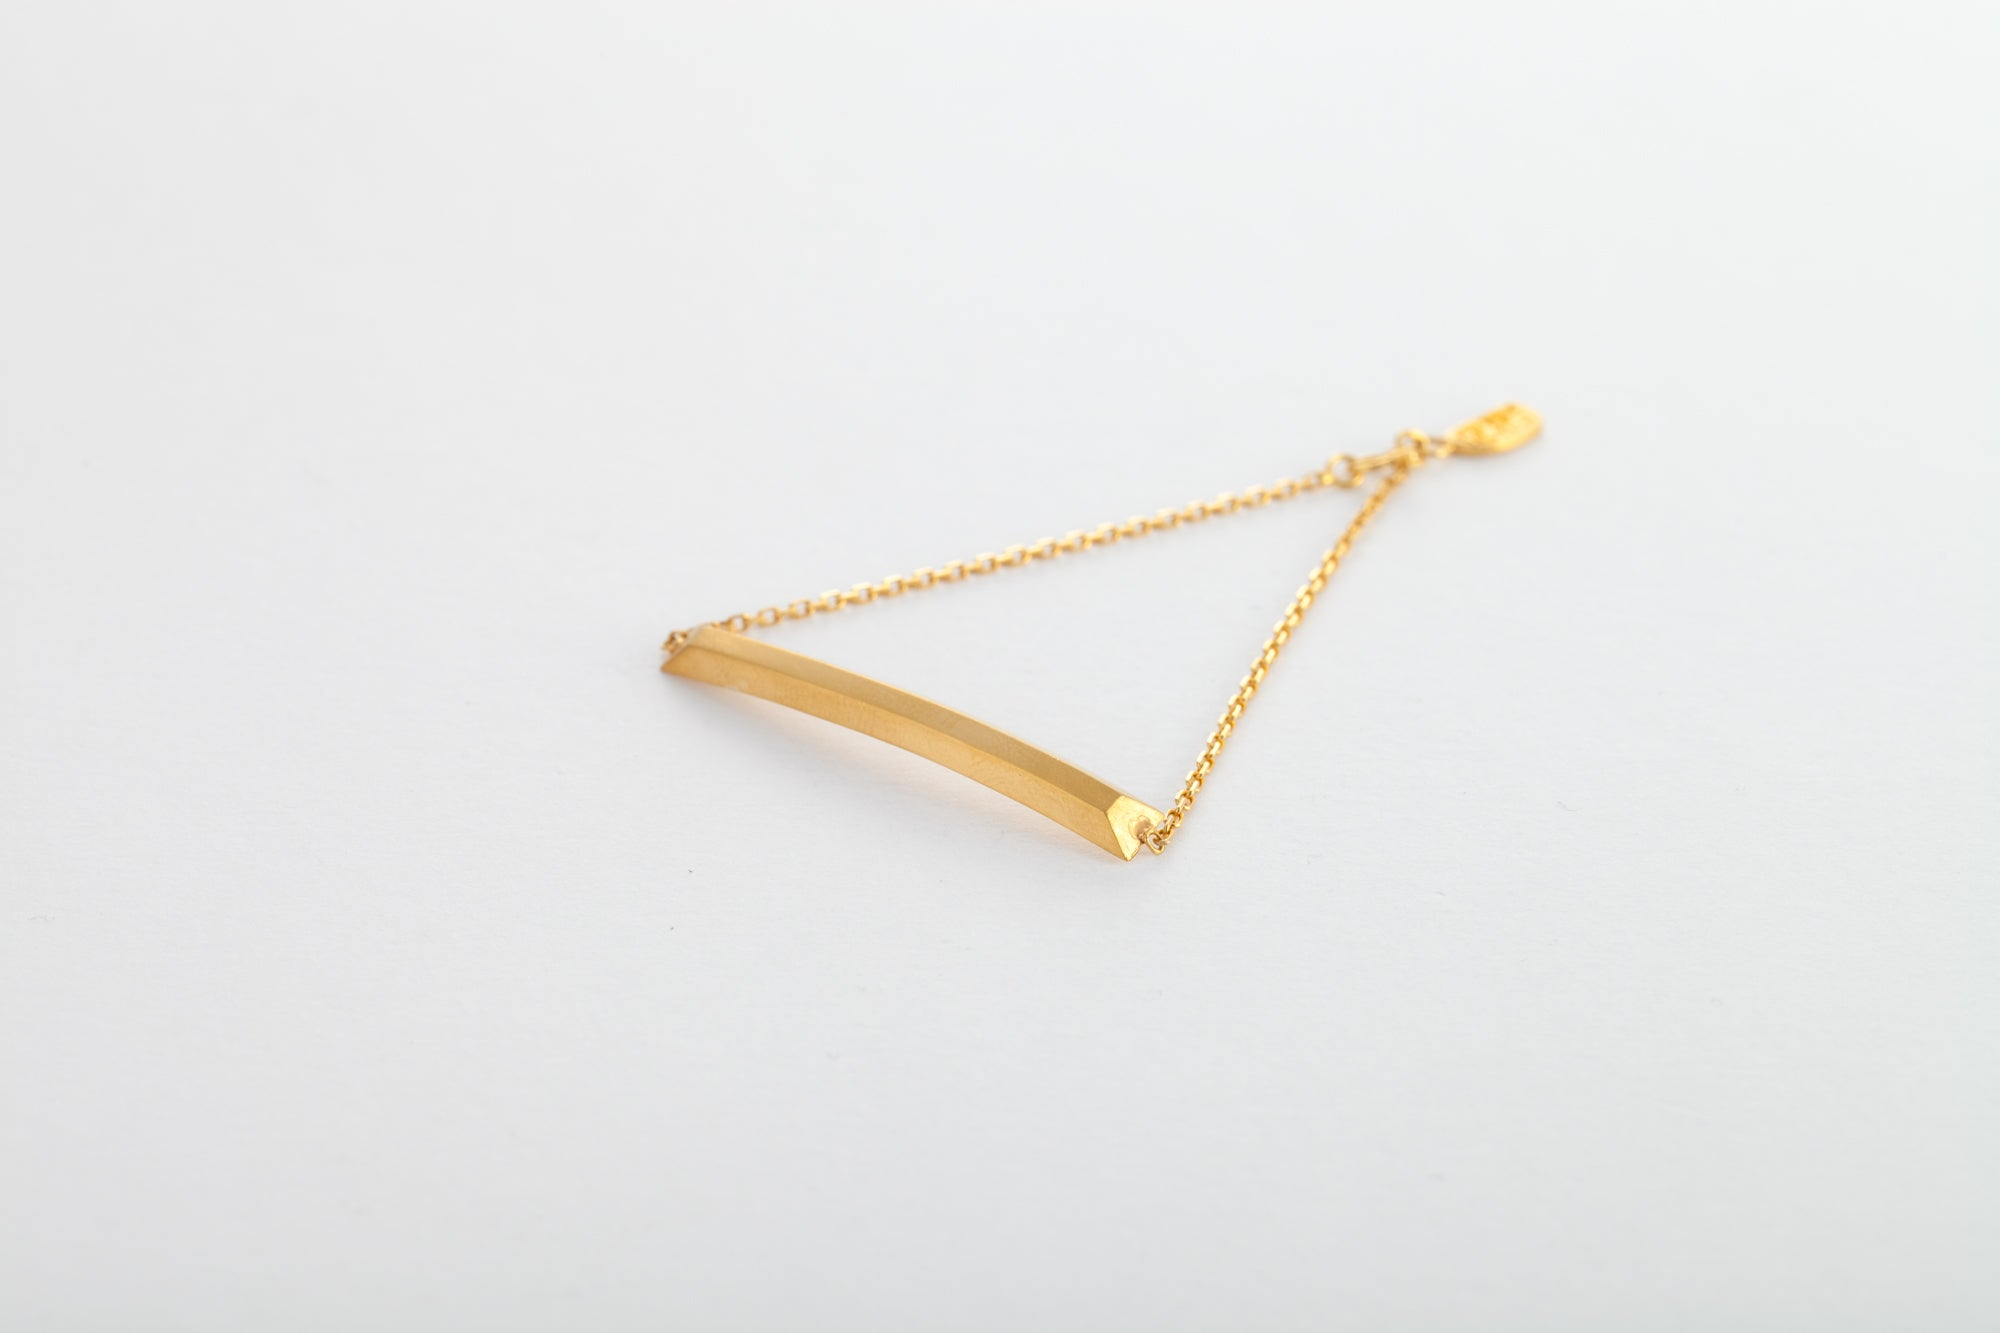 24k Gold Bar Trace Chain Bracelet